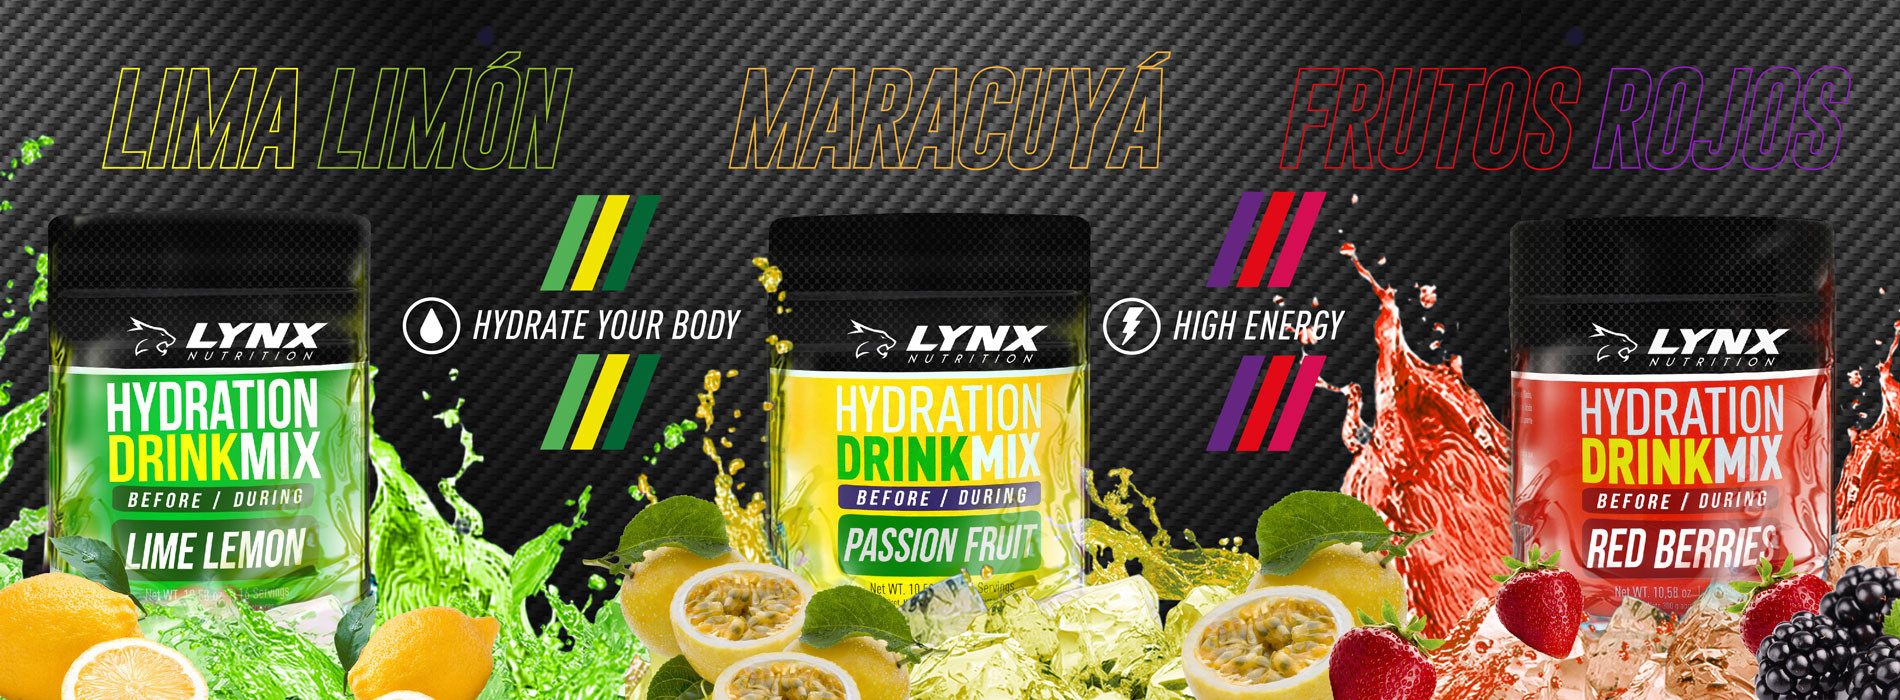 https://www.lynxnutrition.us/categoria-bebidas-hidratantes-sales_hidratantes